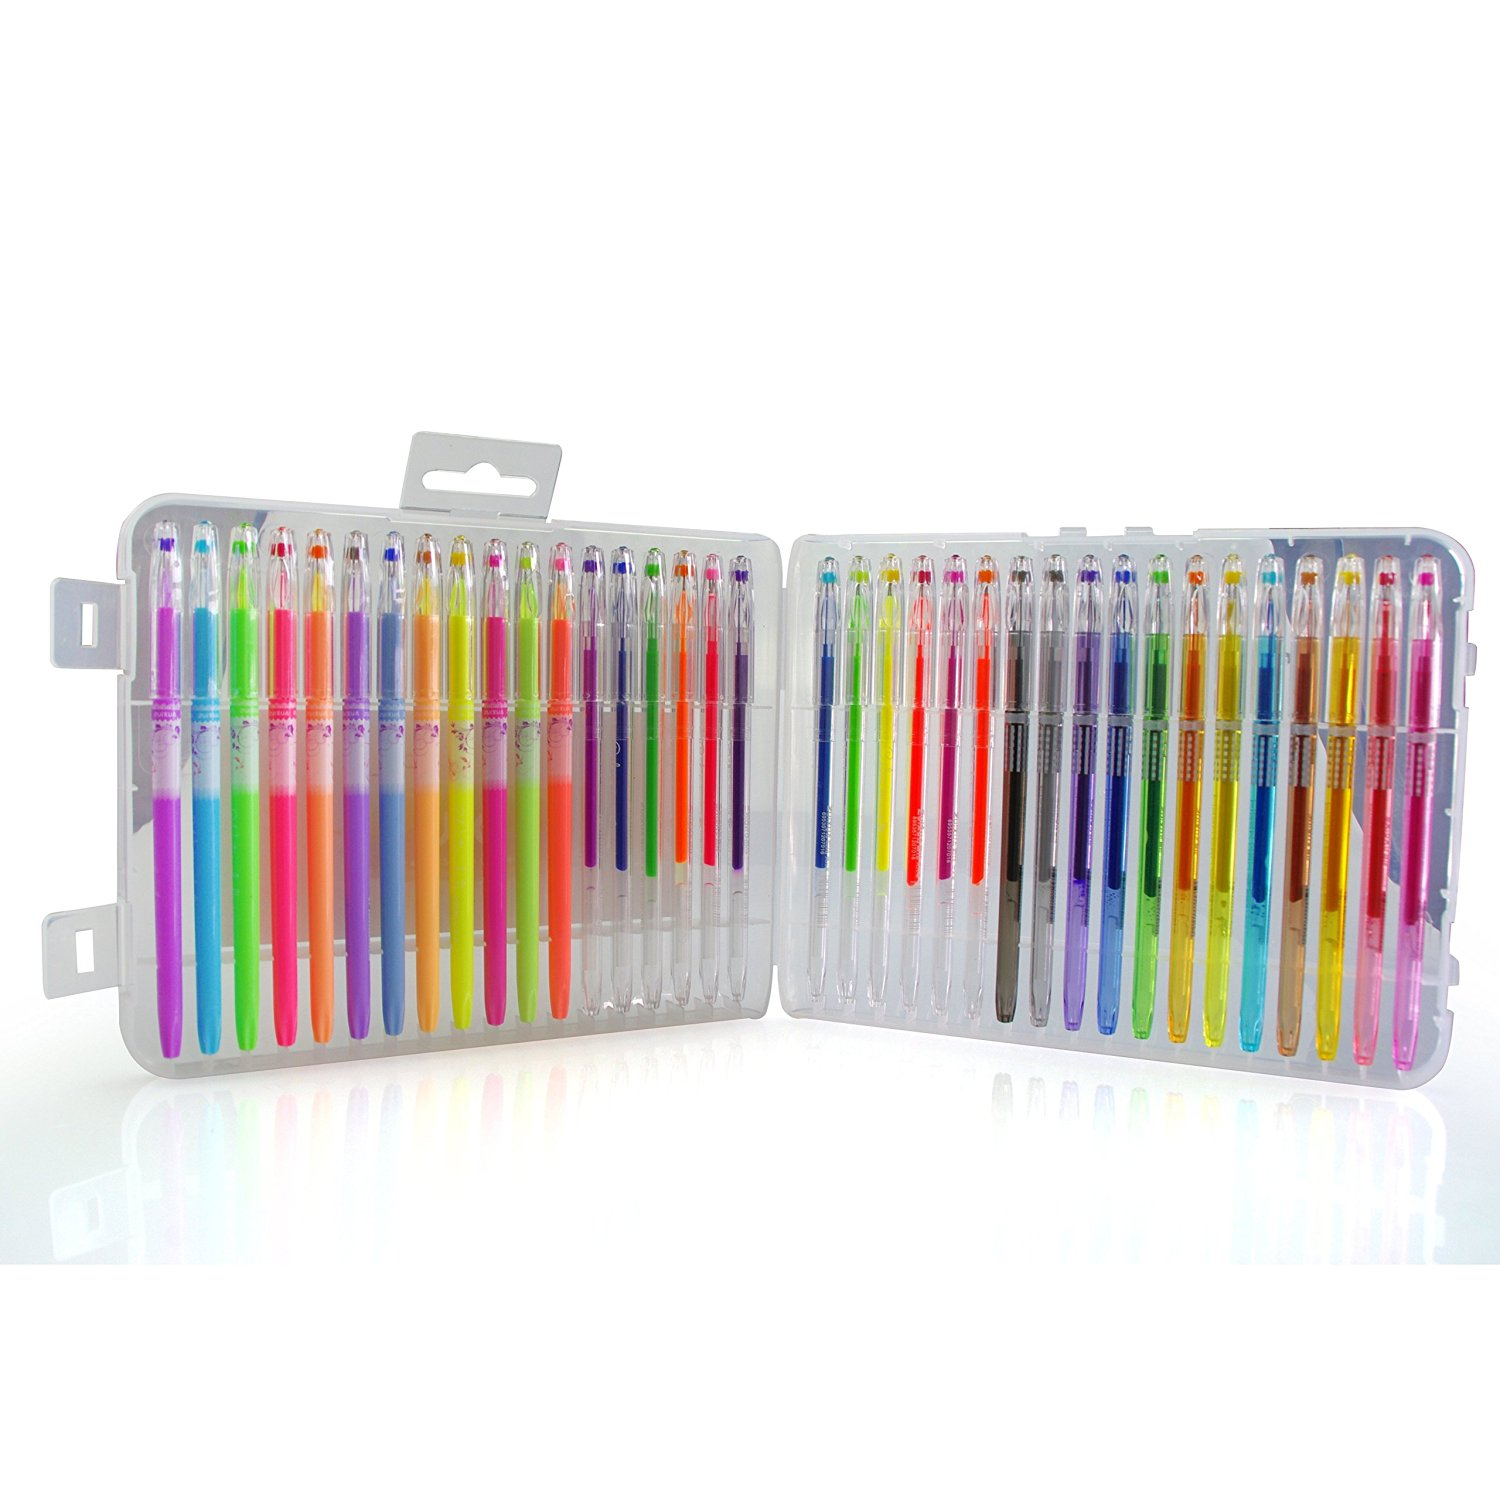 BFU Multi Colored Gel Pen Set with Case, Perfect for Drawing, Party Invites, Coloring, Writing and More, 0.8 - 1.0 mm Fine Point, Set of 36 (12 Glitter Pens, 12 Neon Pens and 12 Pastel Pens)